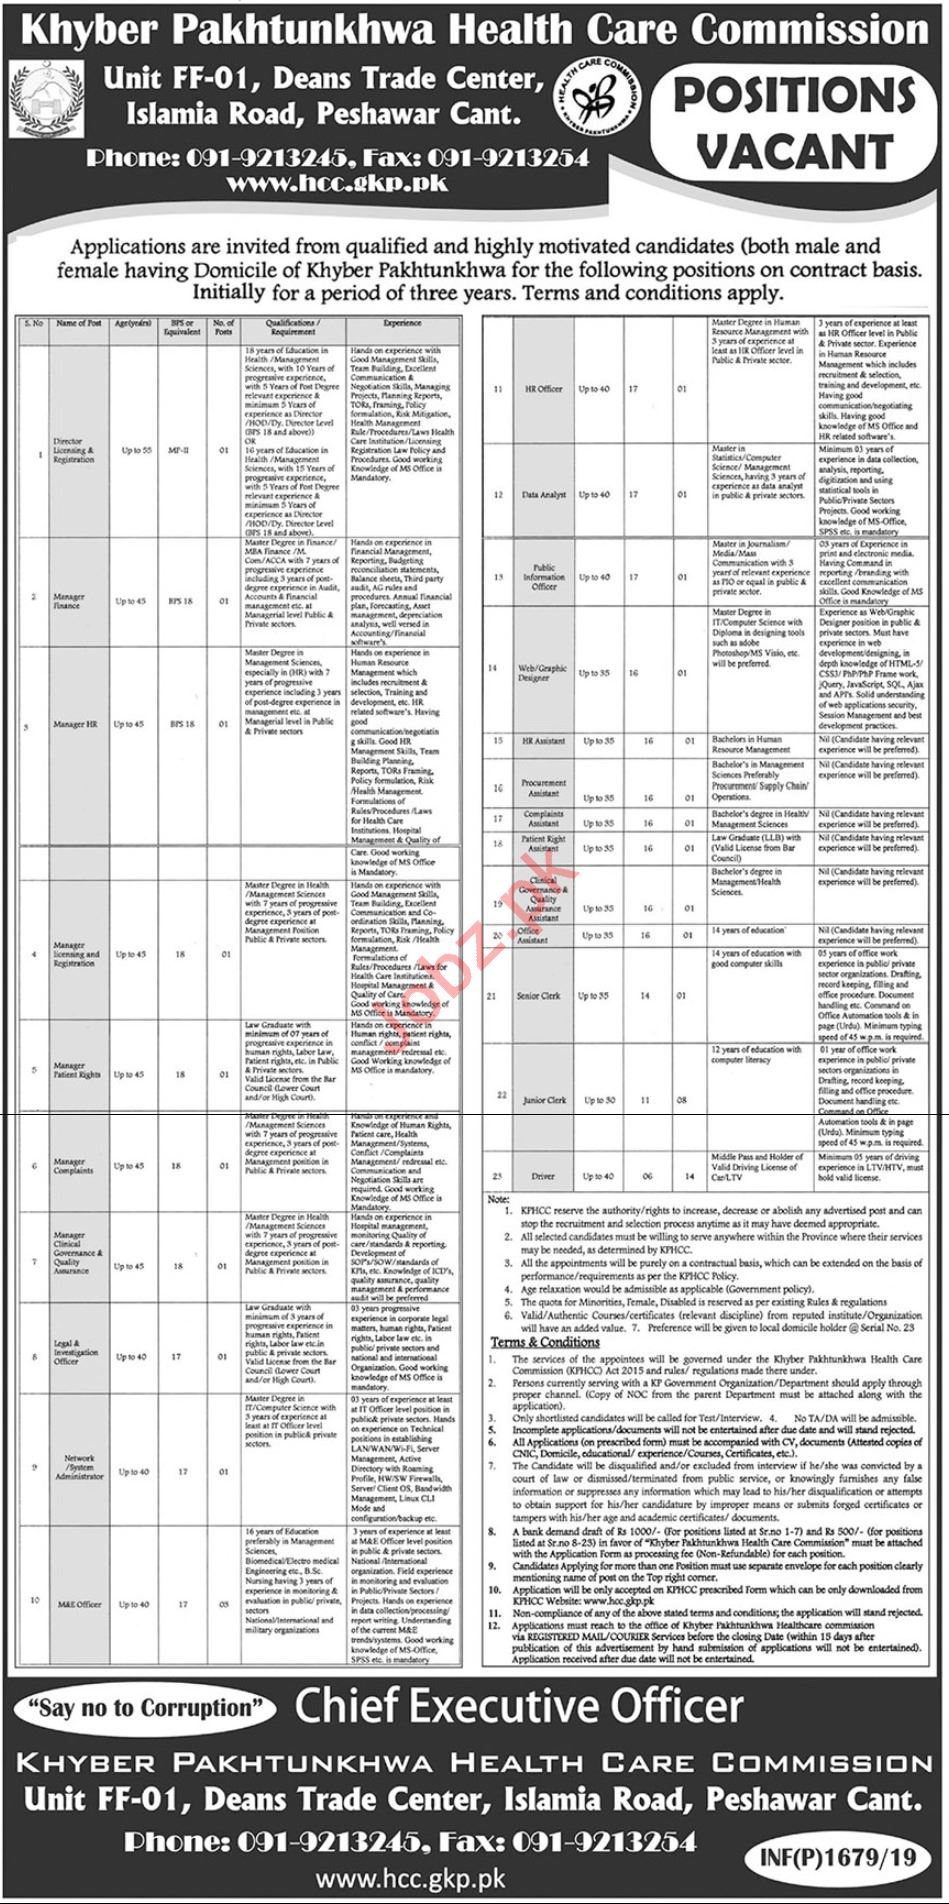 Khyber Pakhtunkhwa Healthcare Commissions Jobs 2019